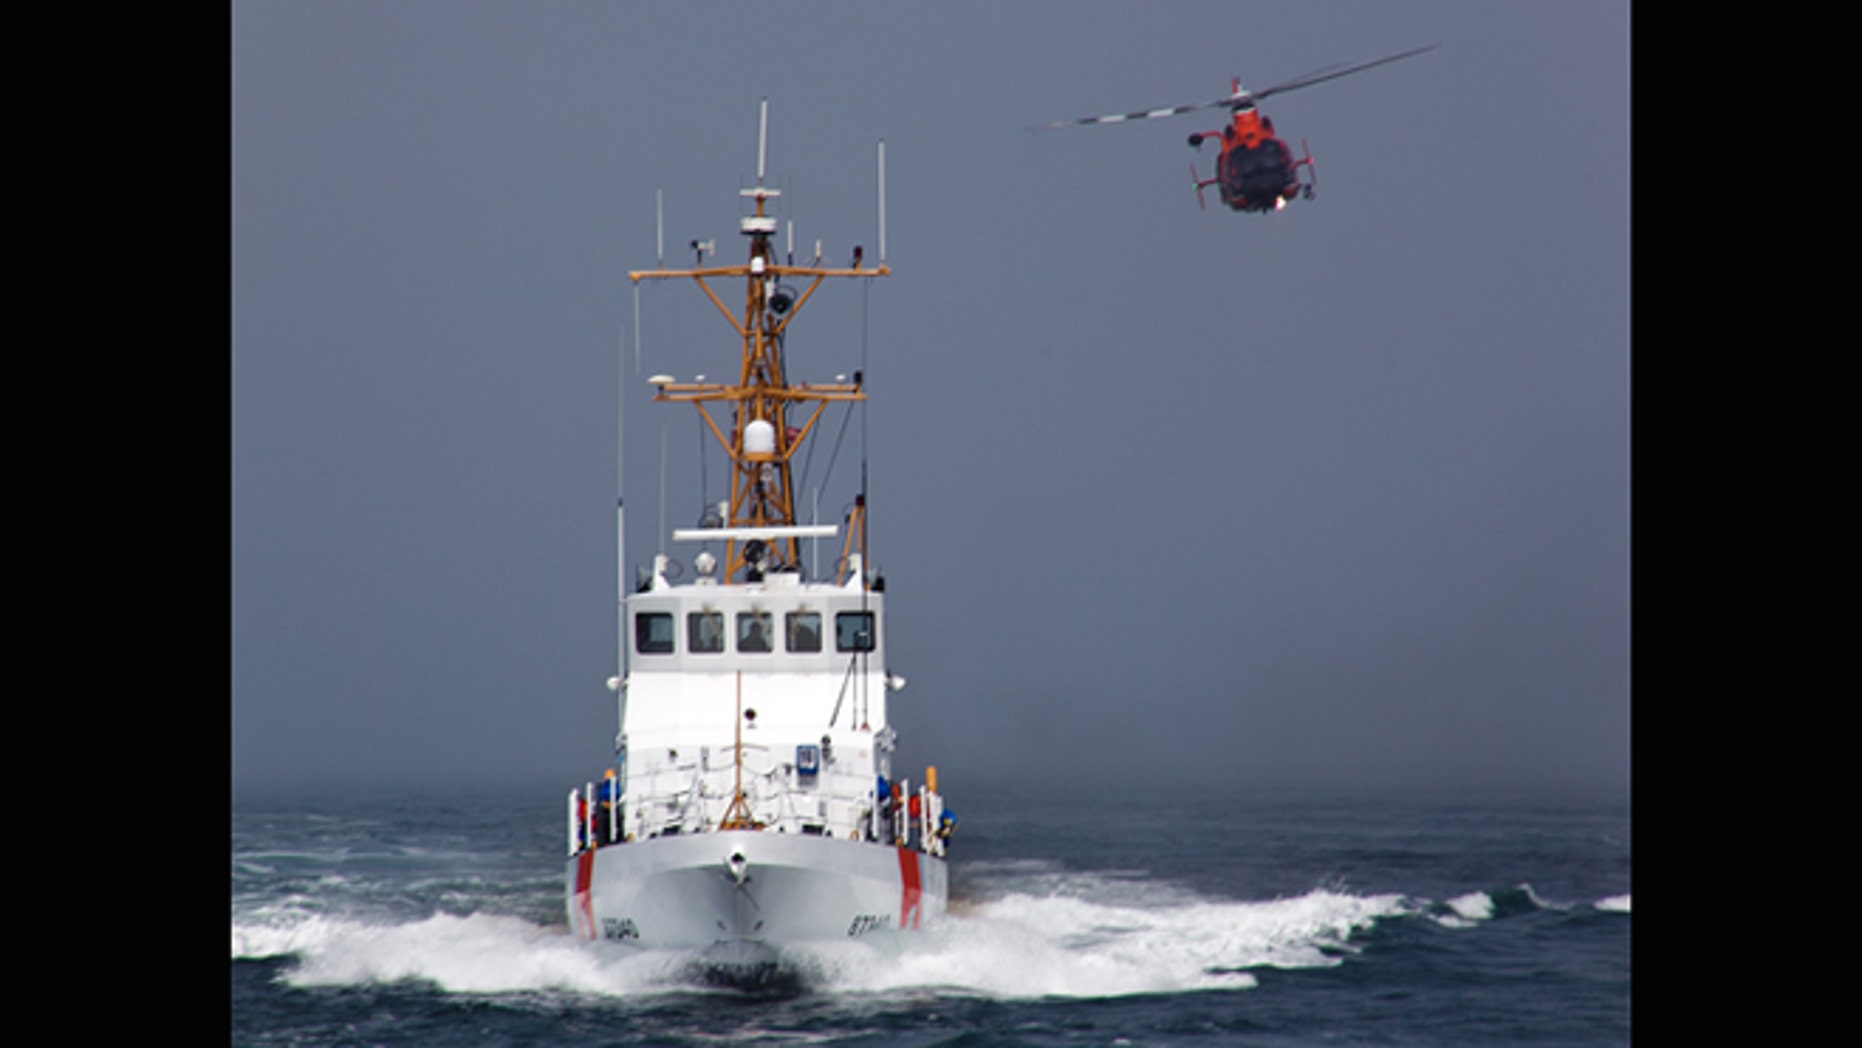 Aug. 29, 2011: CG-6501 (A HH-65 Rescue Helicopter from Airs Station Los Angeles) conducts a close fly-by of CGC HALIBUT as part of their joint efforts during a Koru-Care visit. Koru-care is a program that makes wishes happen for terminally ill children from New Zealand.